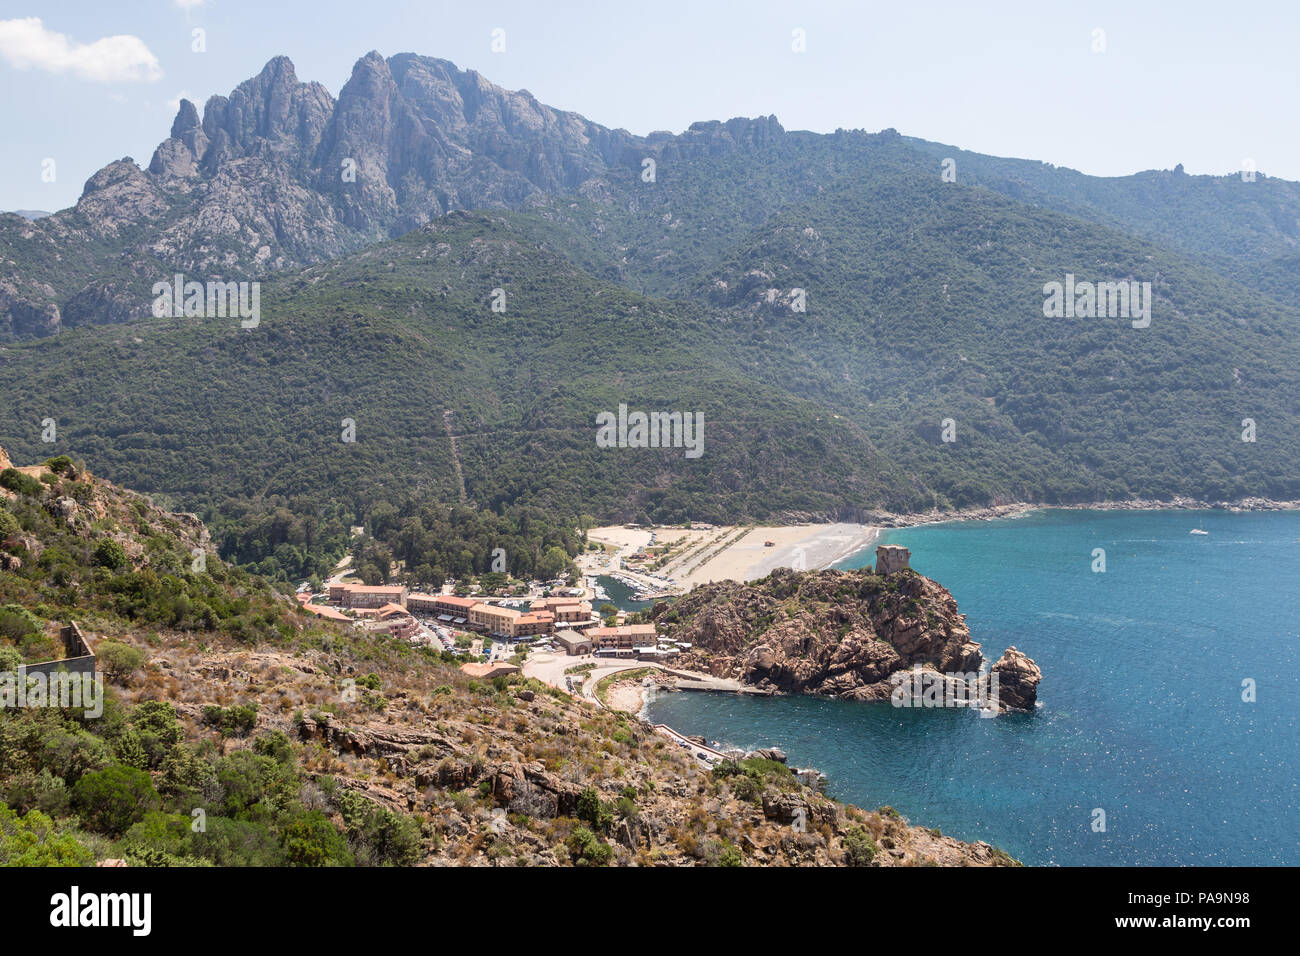 The resort town of Porto with its medieval fortification tower on a cliff by the mediterranean sea in Corsica, France - Stock Image